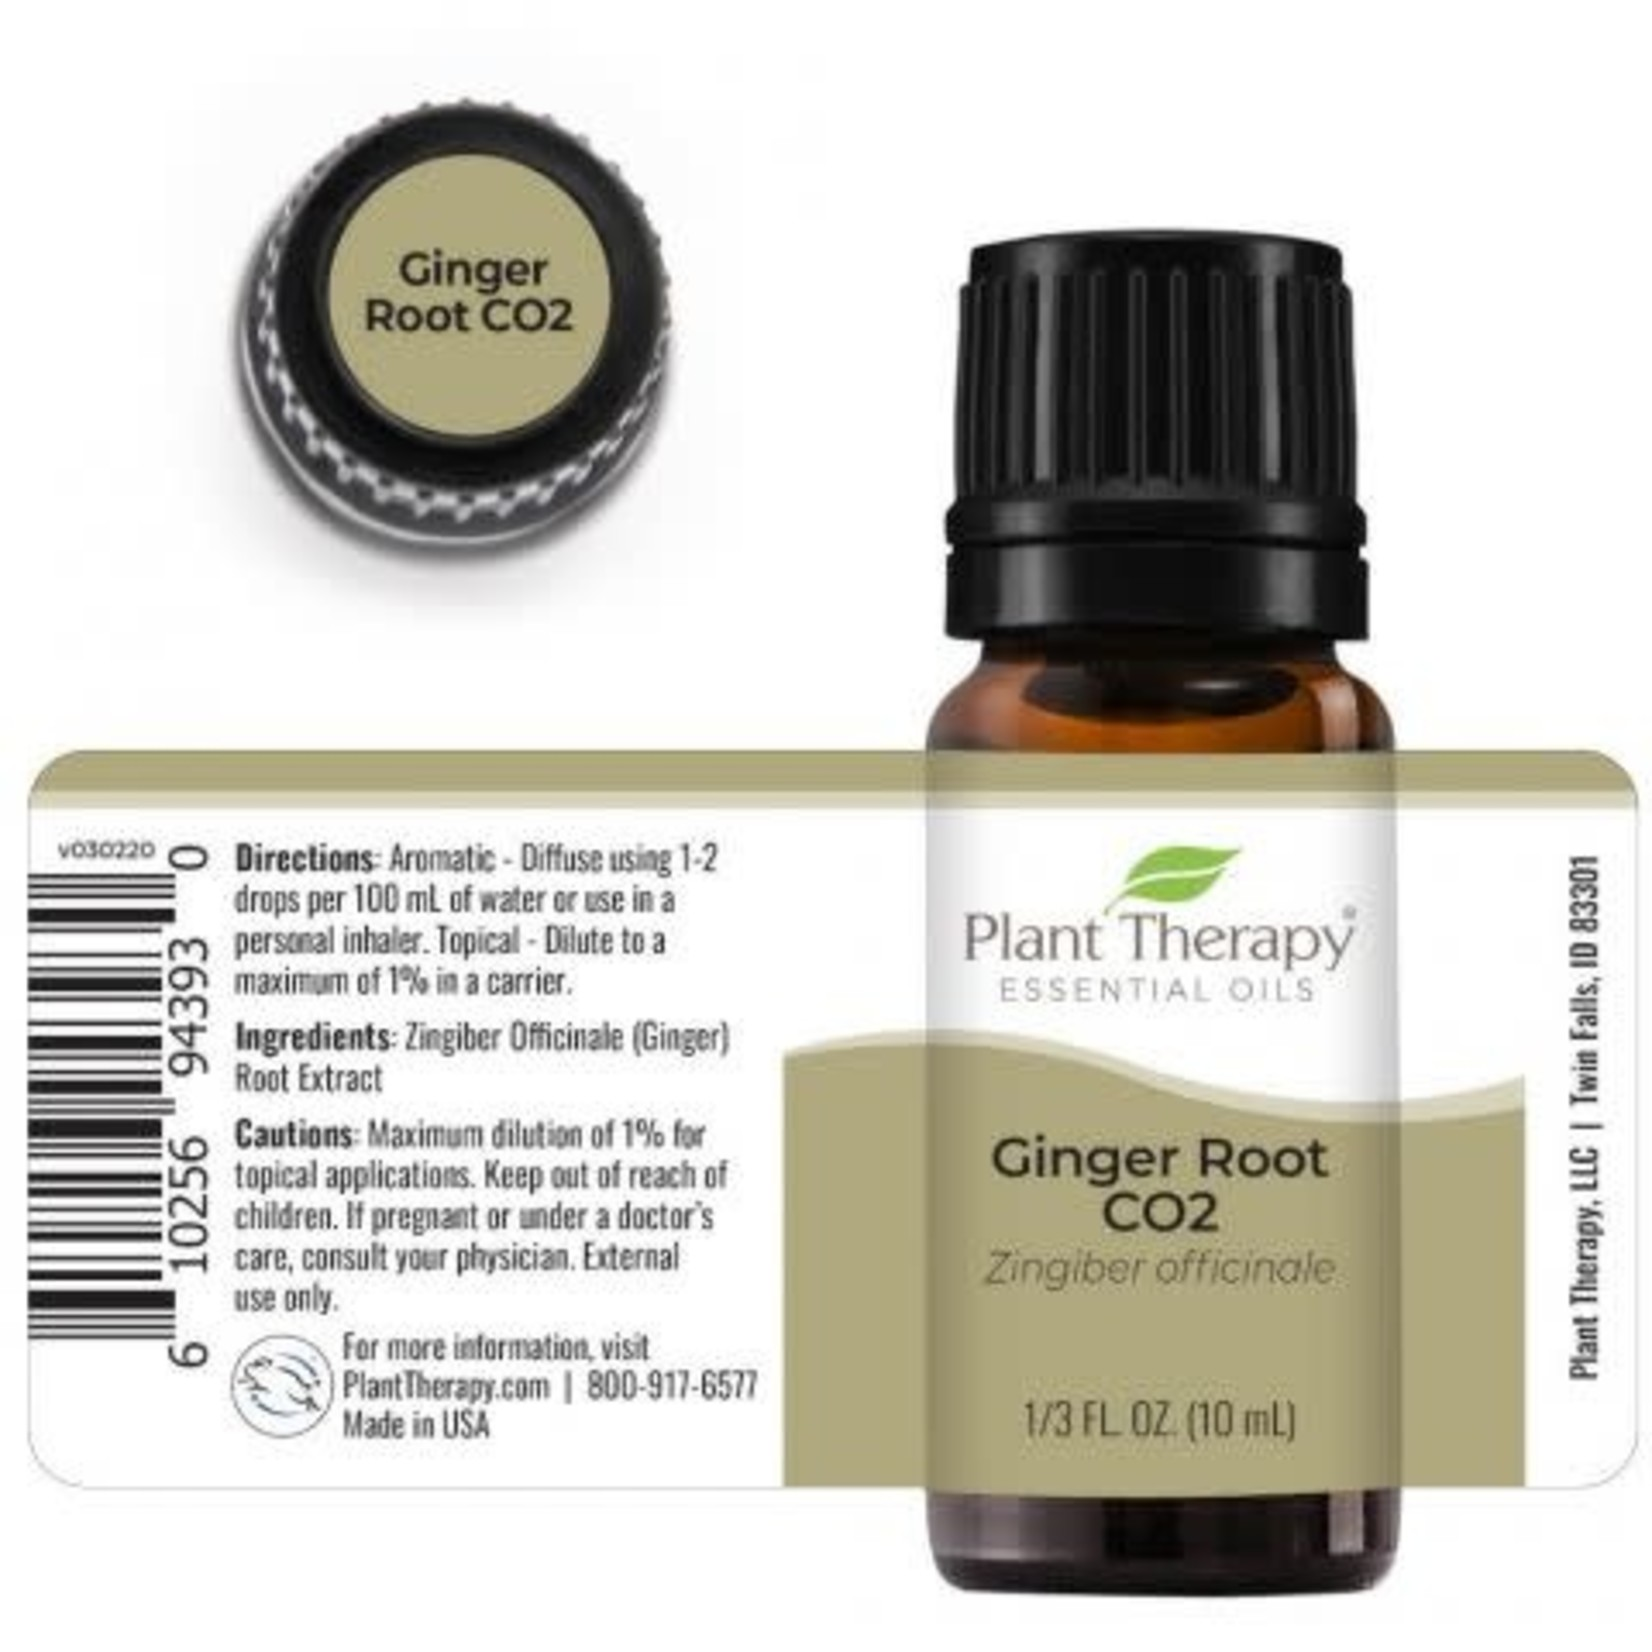 Plant Therapy PT Ginger Root CO2 Essential Oil 10ml